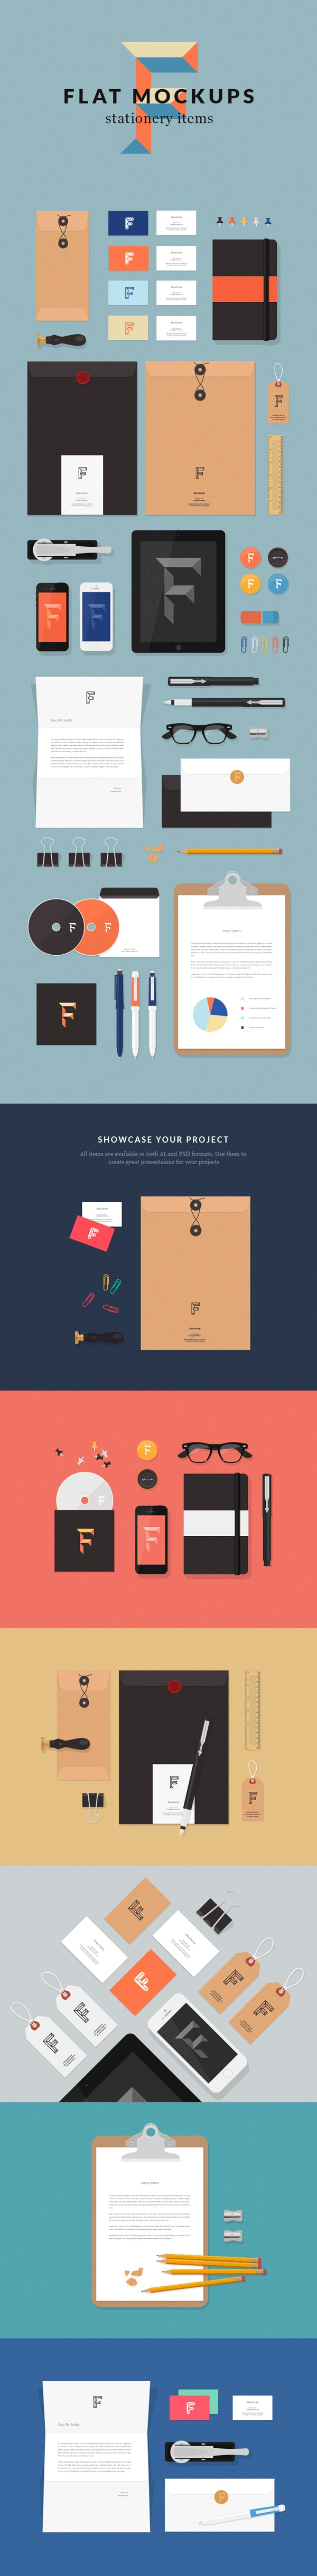 Stationery Items Flat MockUps